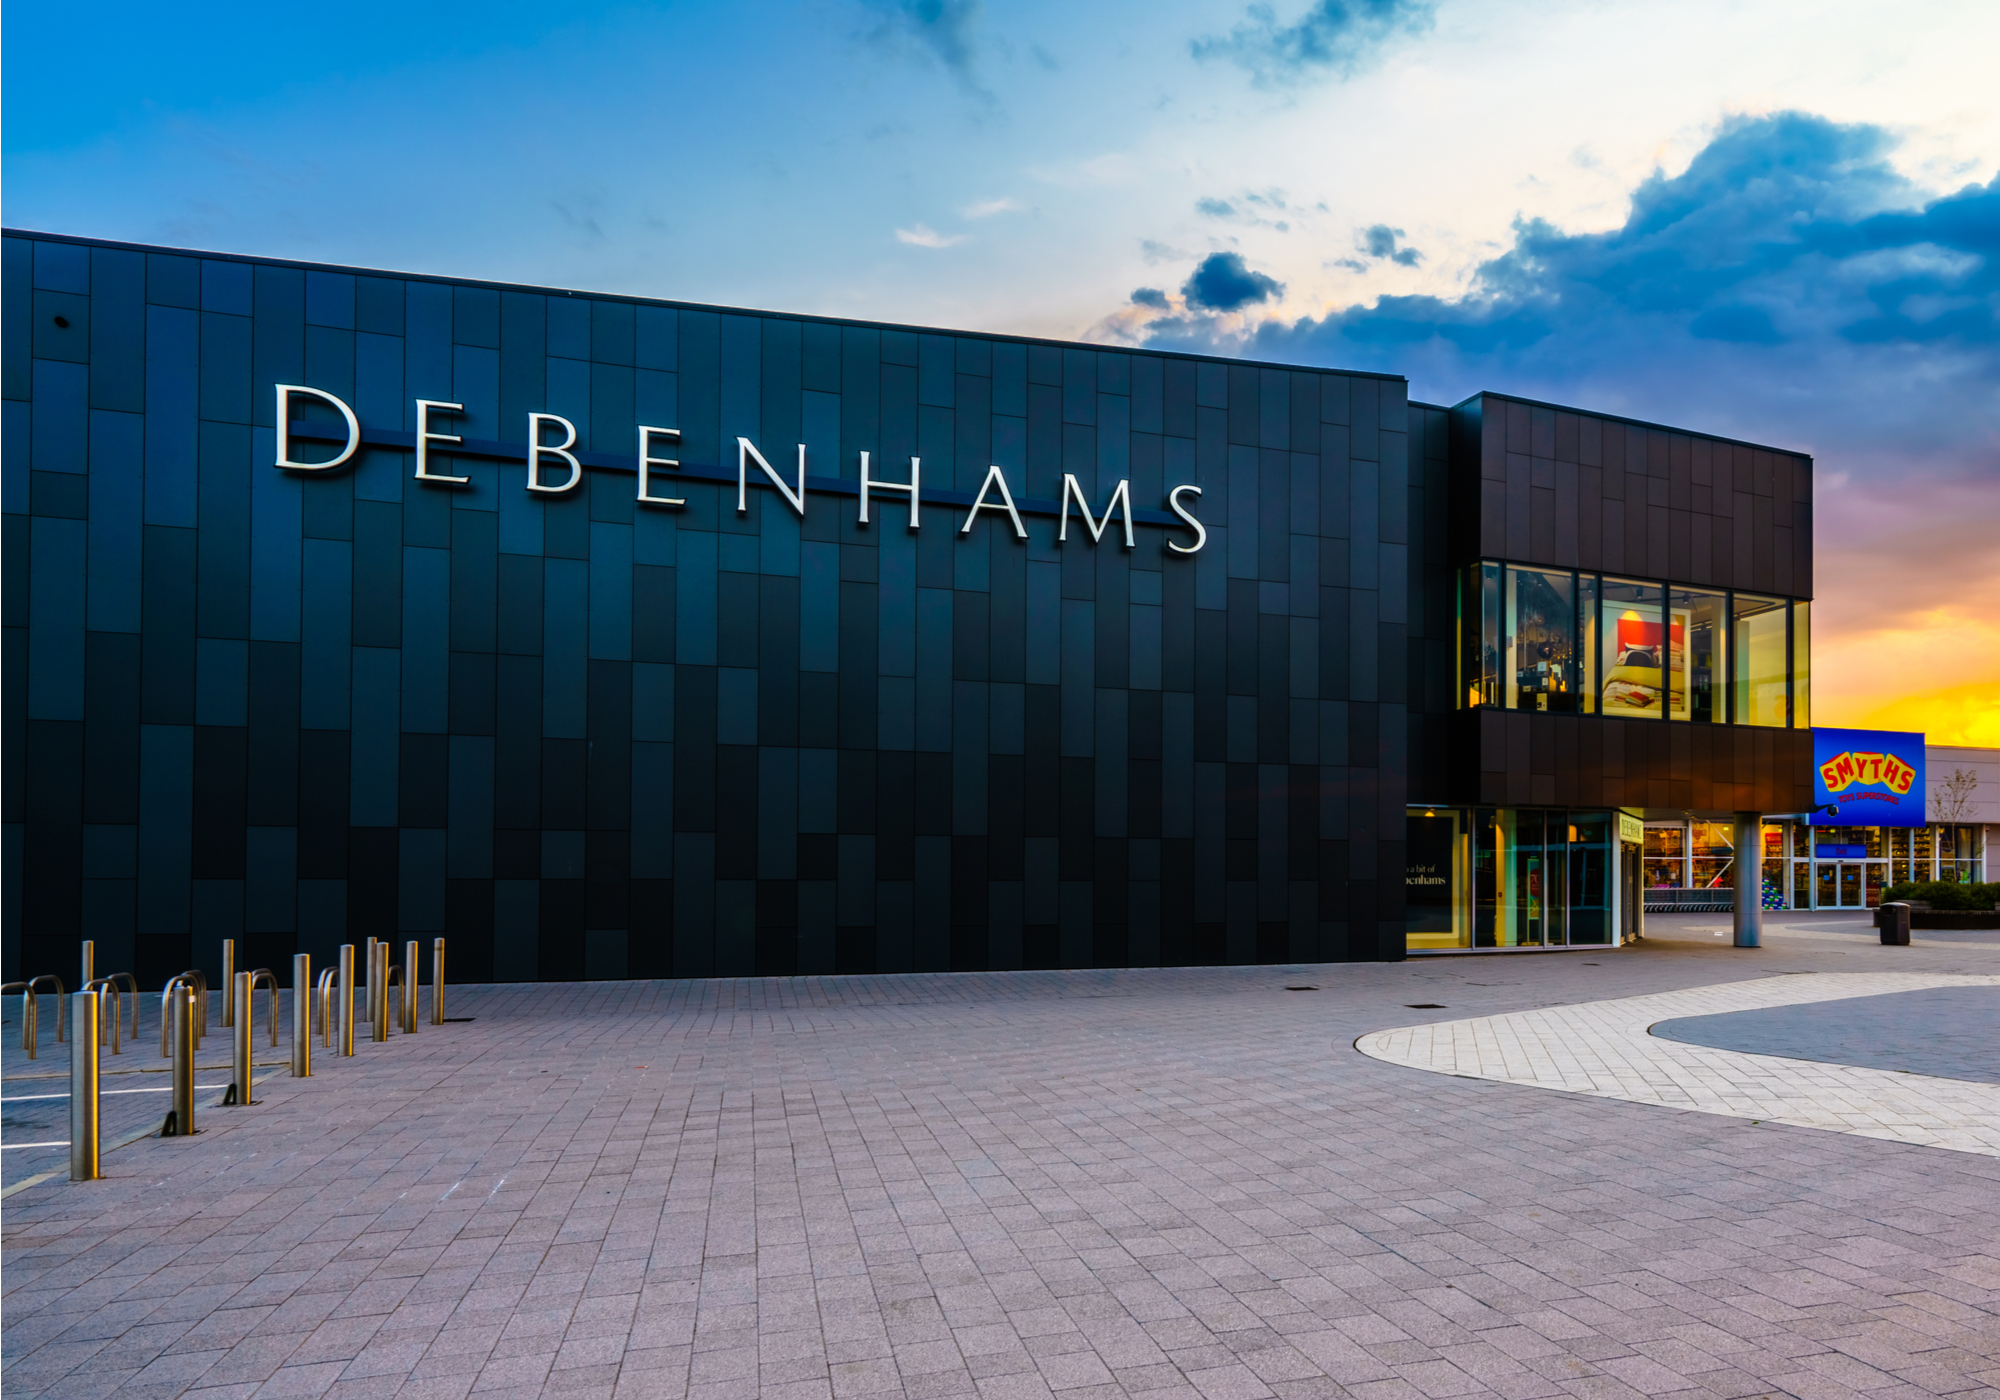 Boohoo snaps up Debenhams as ecommerce feasts on high street